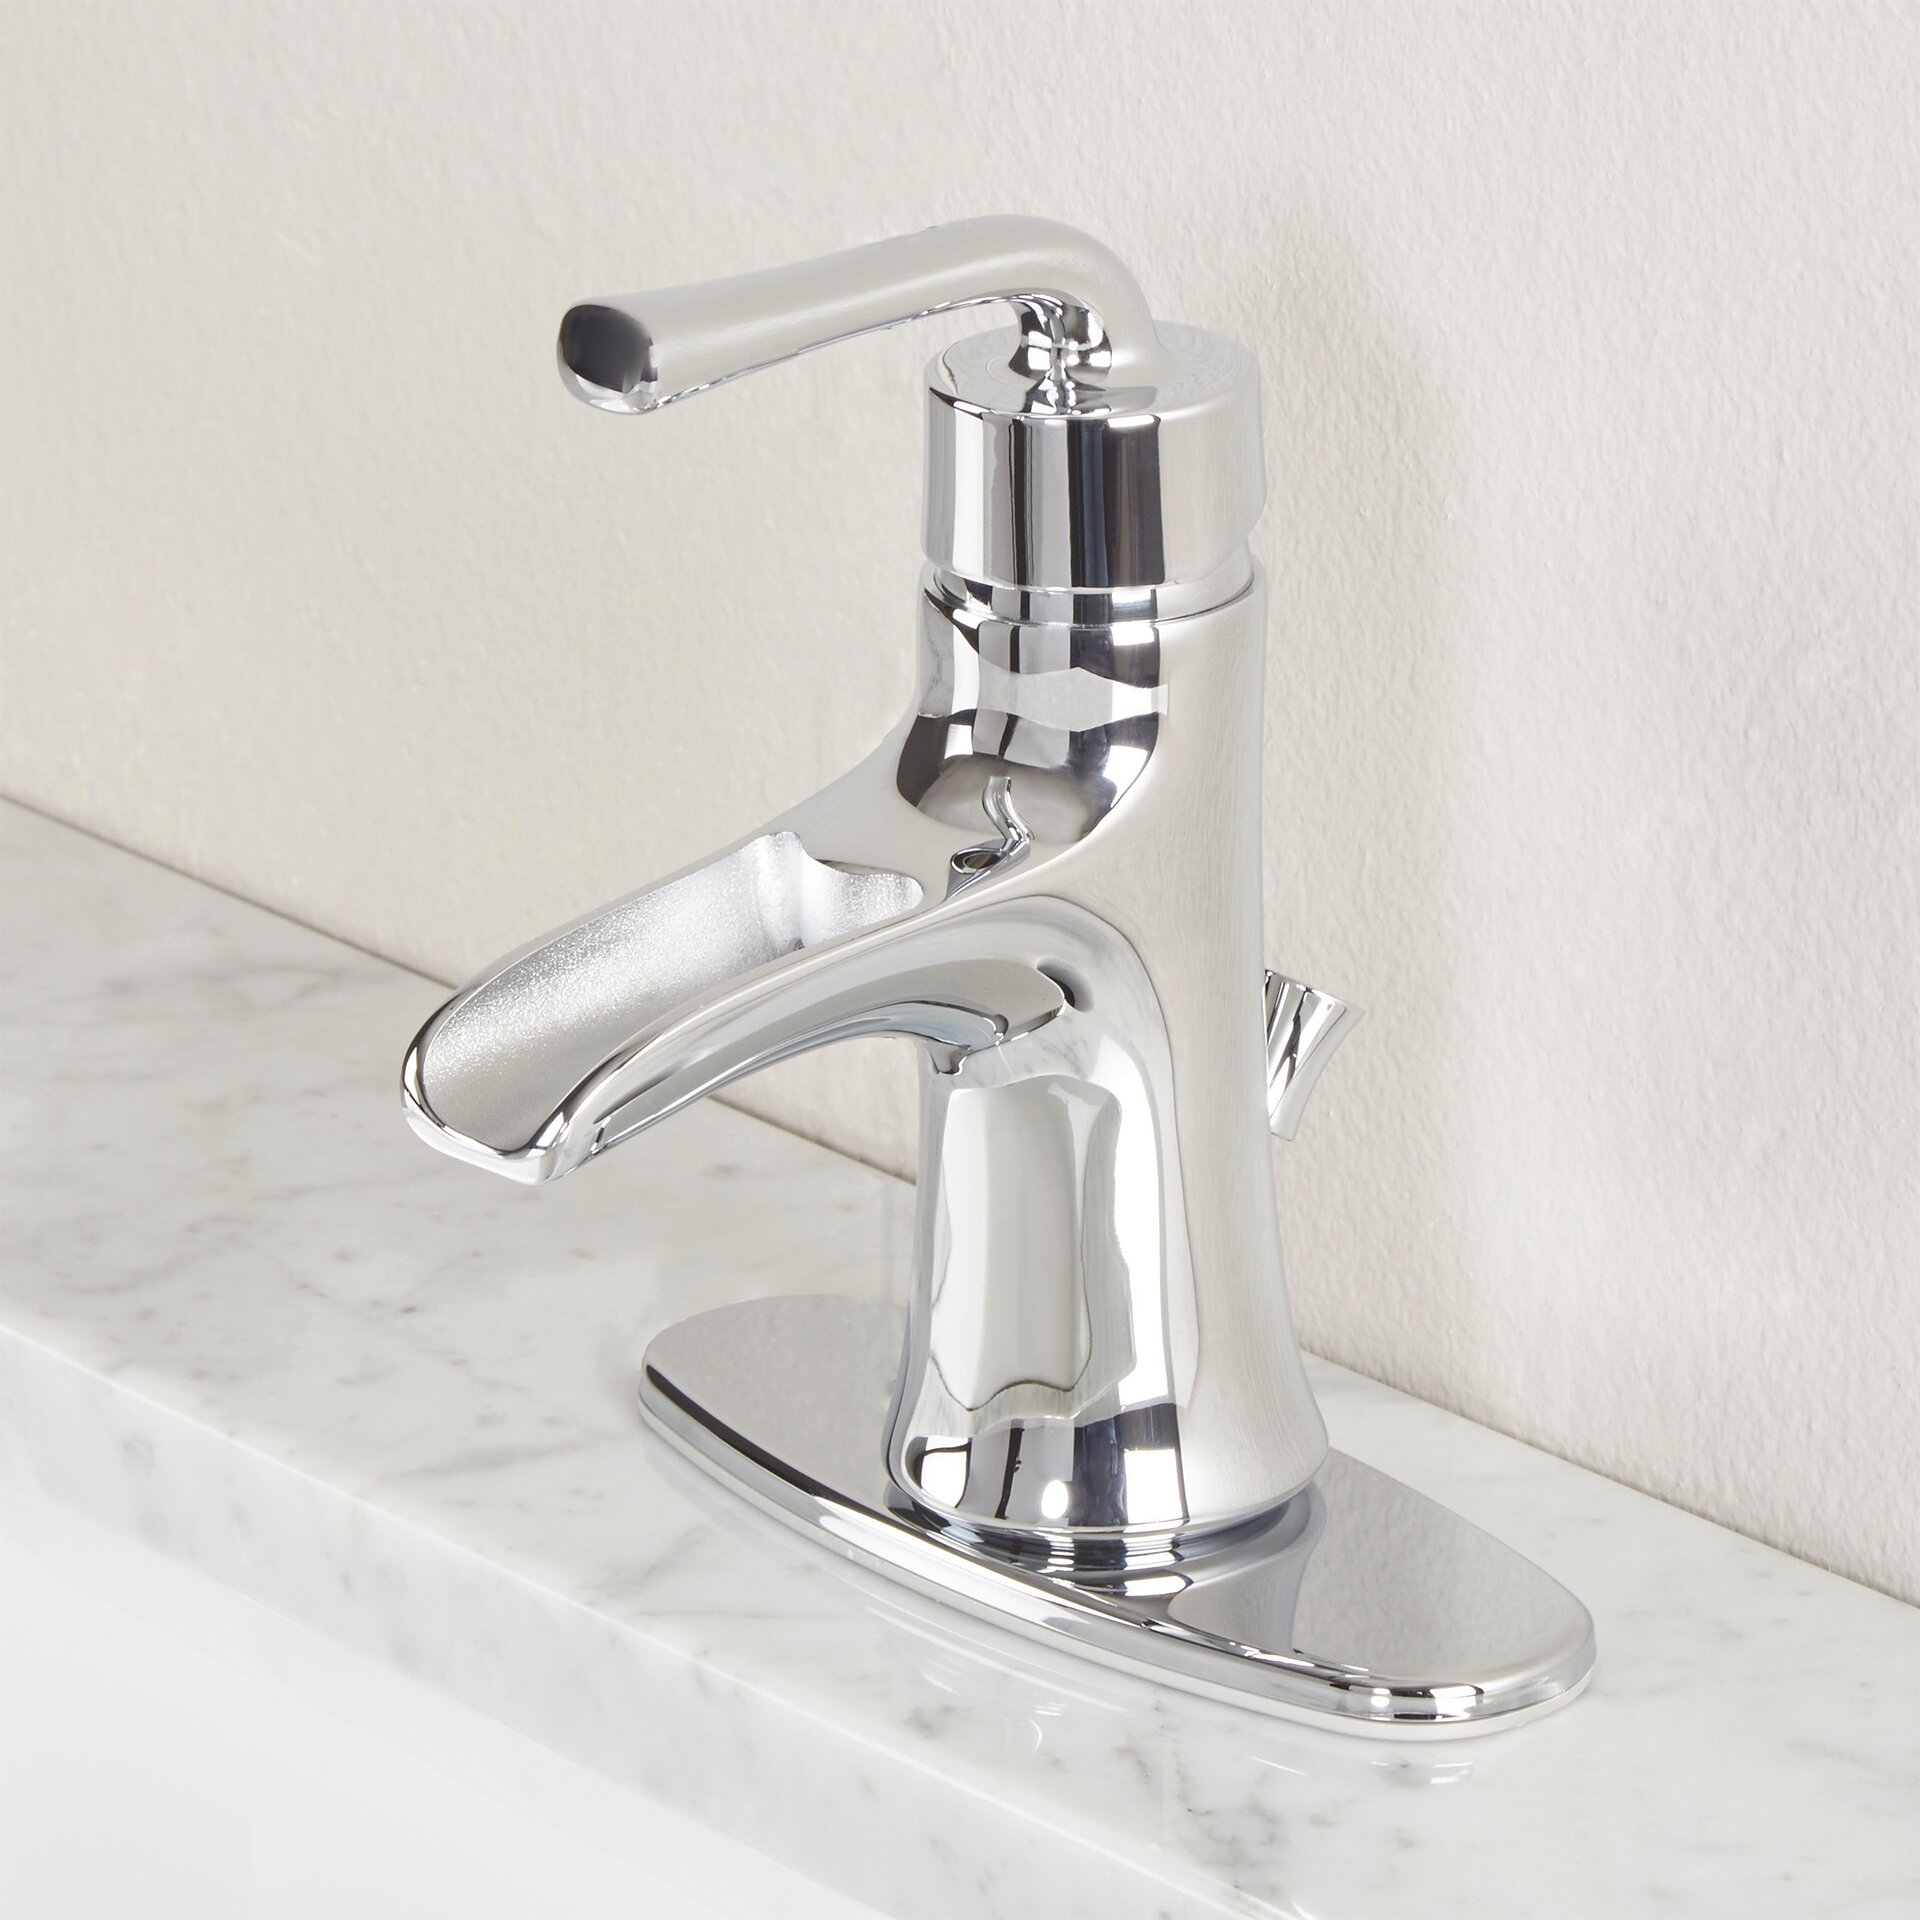 Premier Faucet Sanibel Single Handle Bathroom Faucet Amp Reviews Wayfair